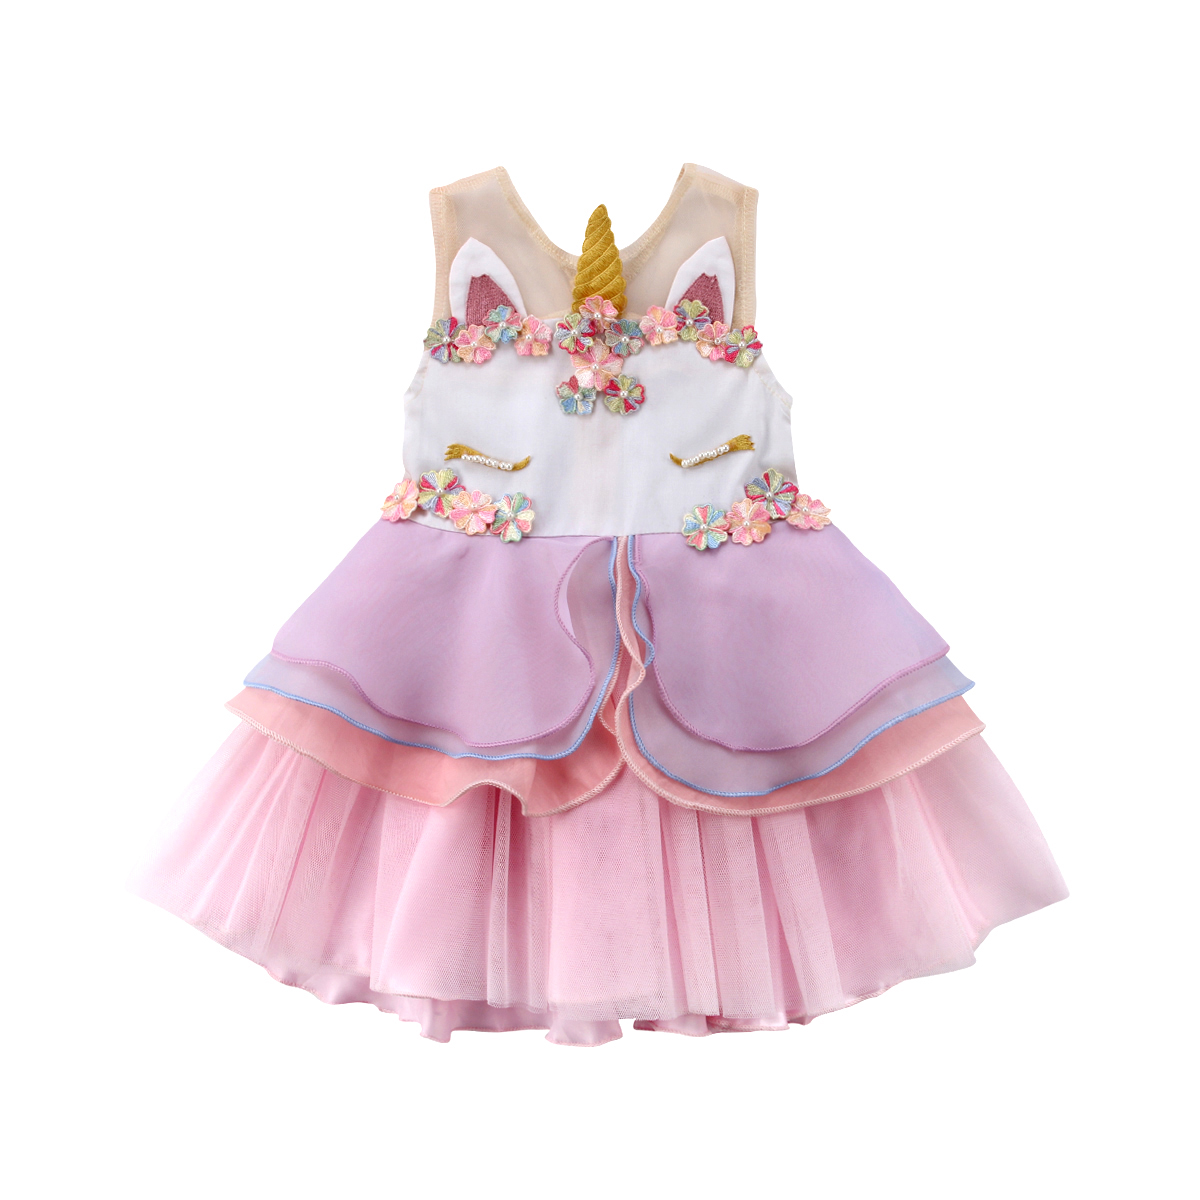 2ccd4dadff4dd Pudcoco Chiffon Baby Girls Unicorn Princess Dress Toddler Wedding Party  Formal Lace Ball Gown Dress 2018 New For 0 6Y-in Dresses from Mother & Kids  on ...